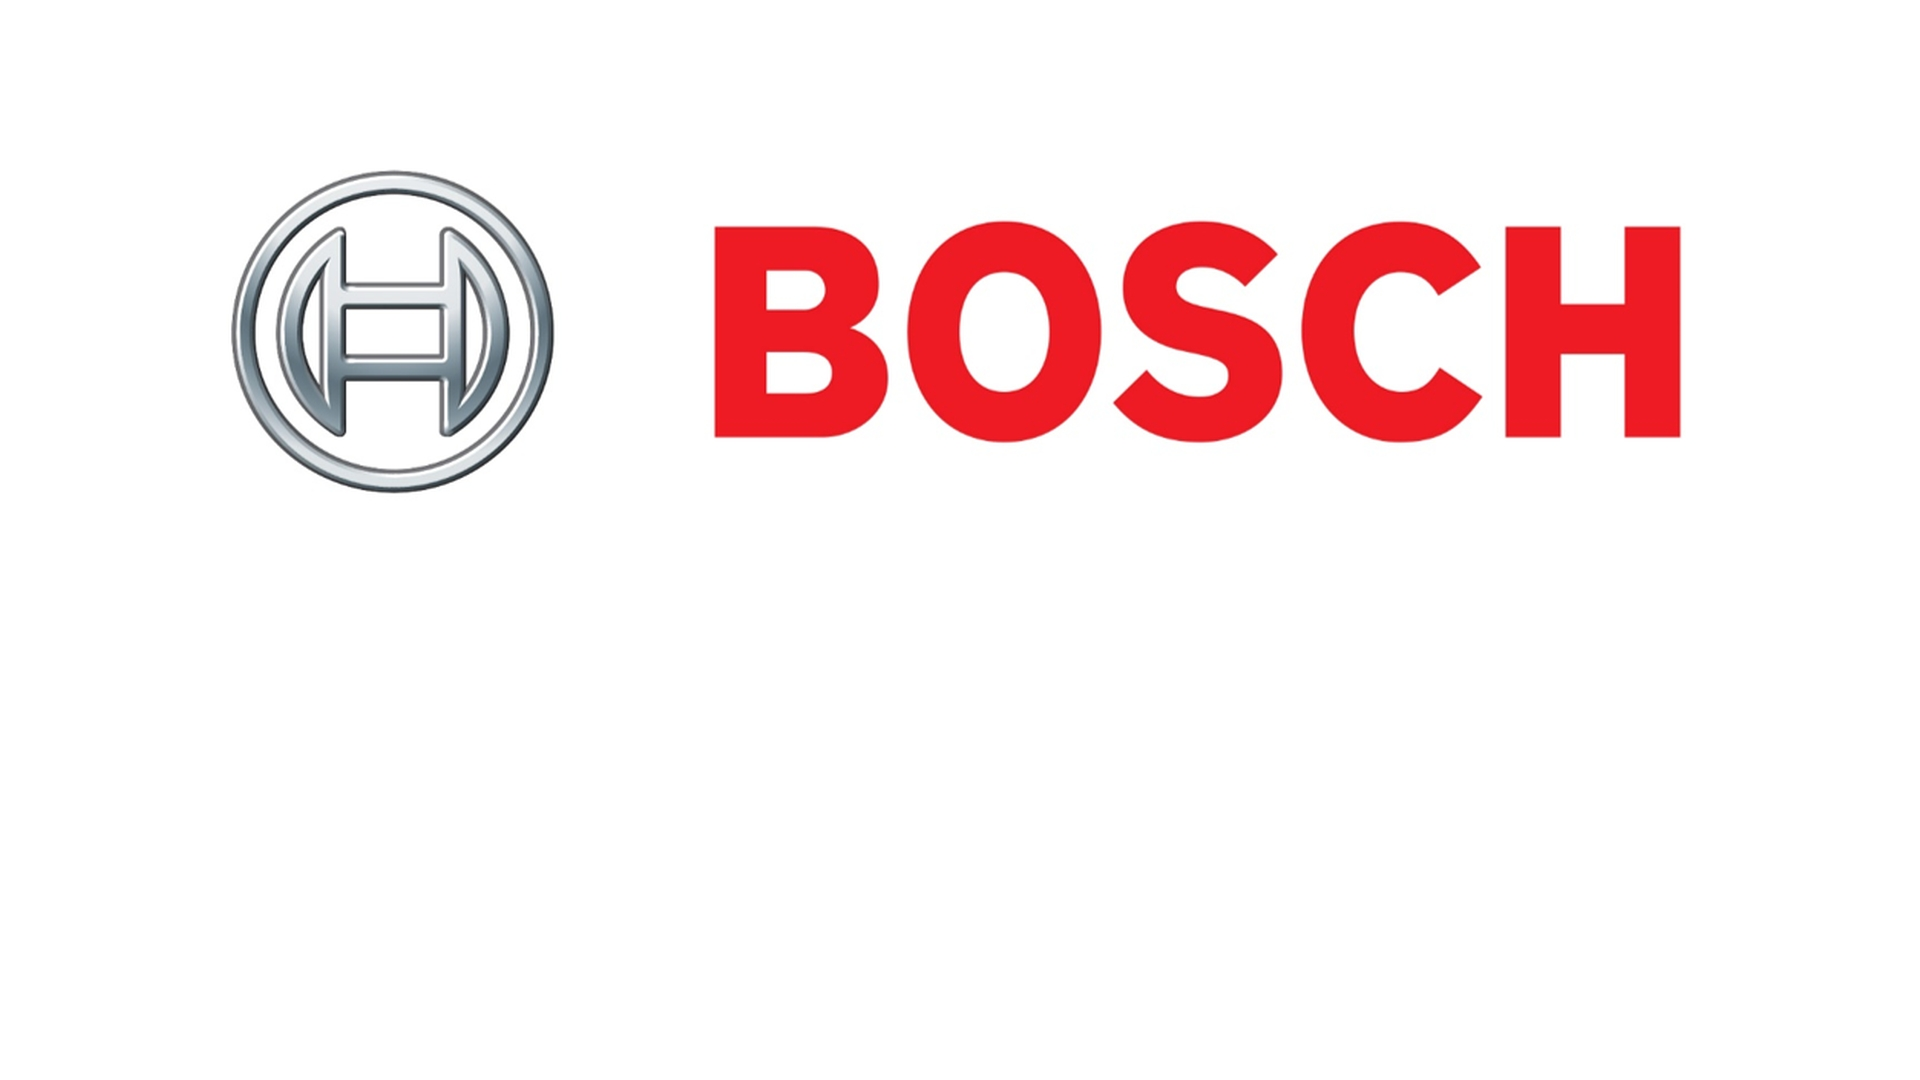 Bosch has chosen Hungary for the location of its Service Centre - VIDEO REPORT